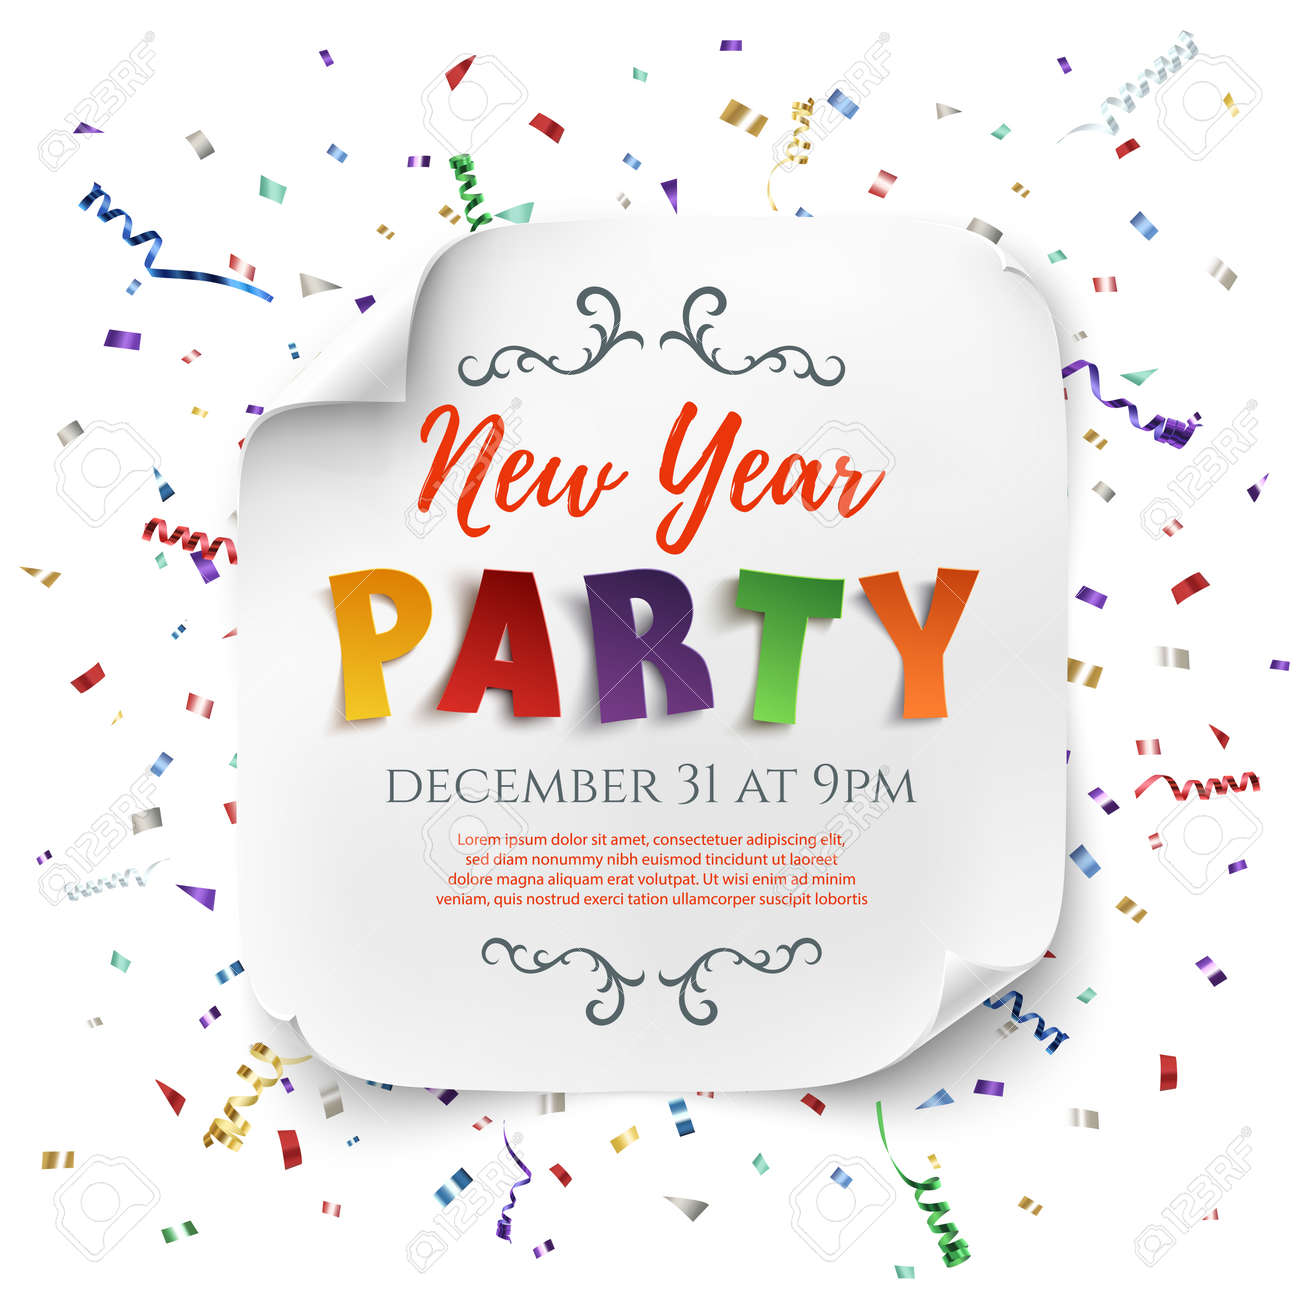 New Year Party Poster Template With Ribbons And Confetti Isolated ...